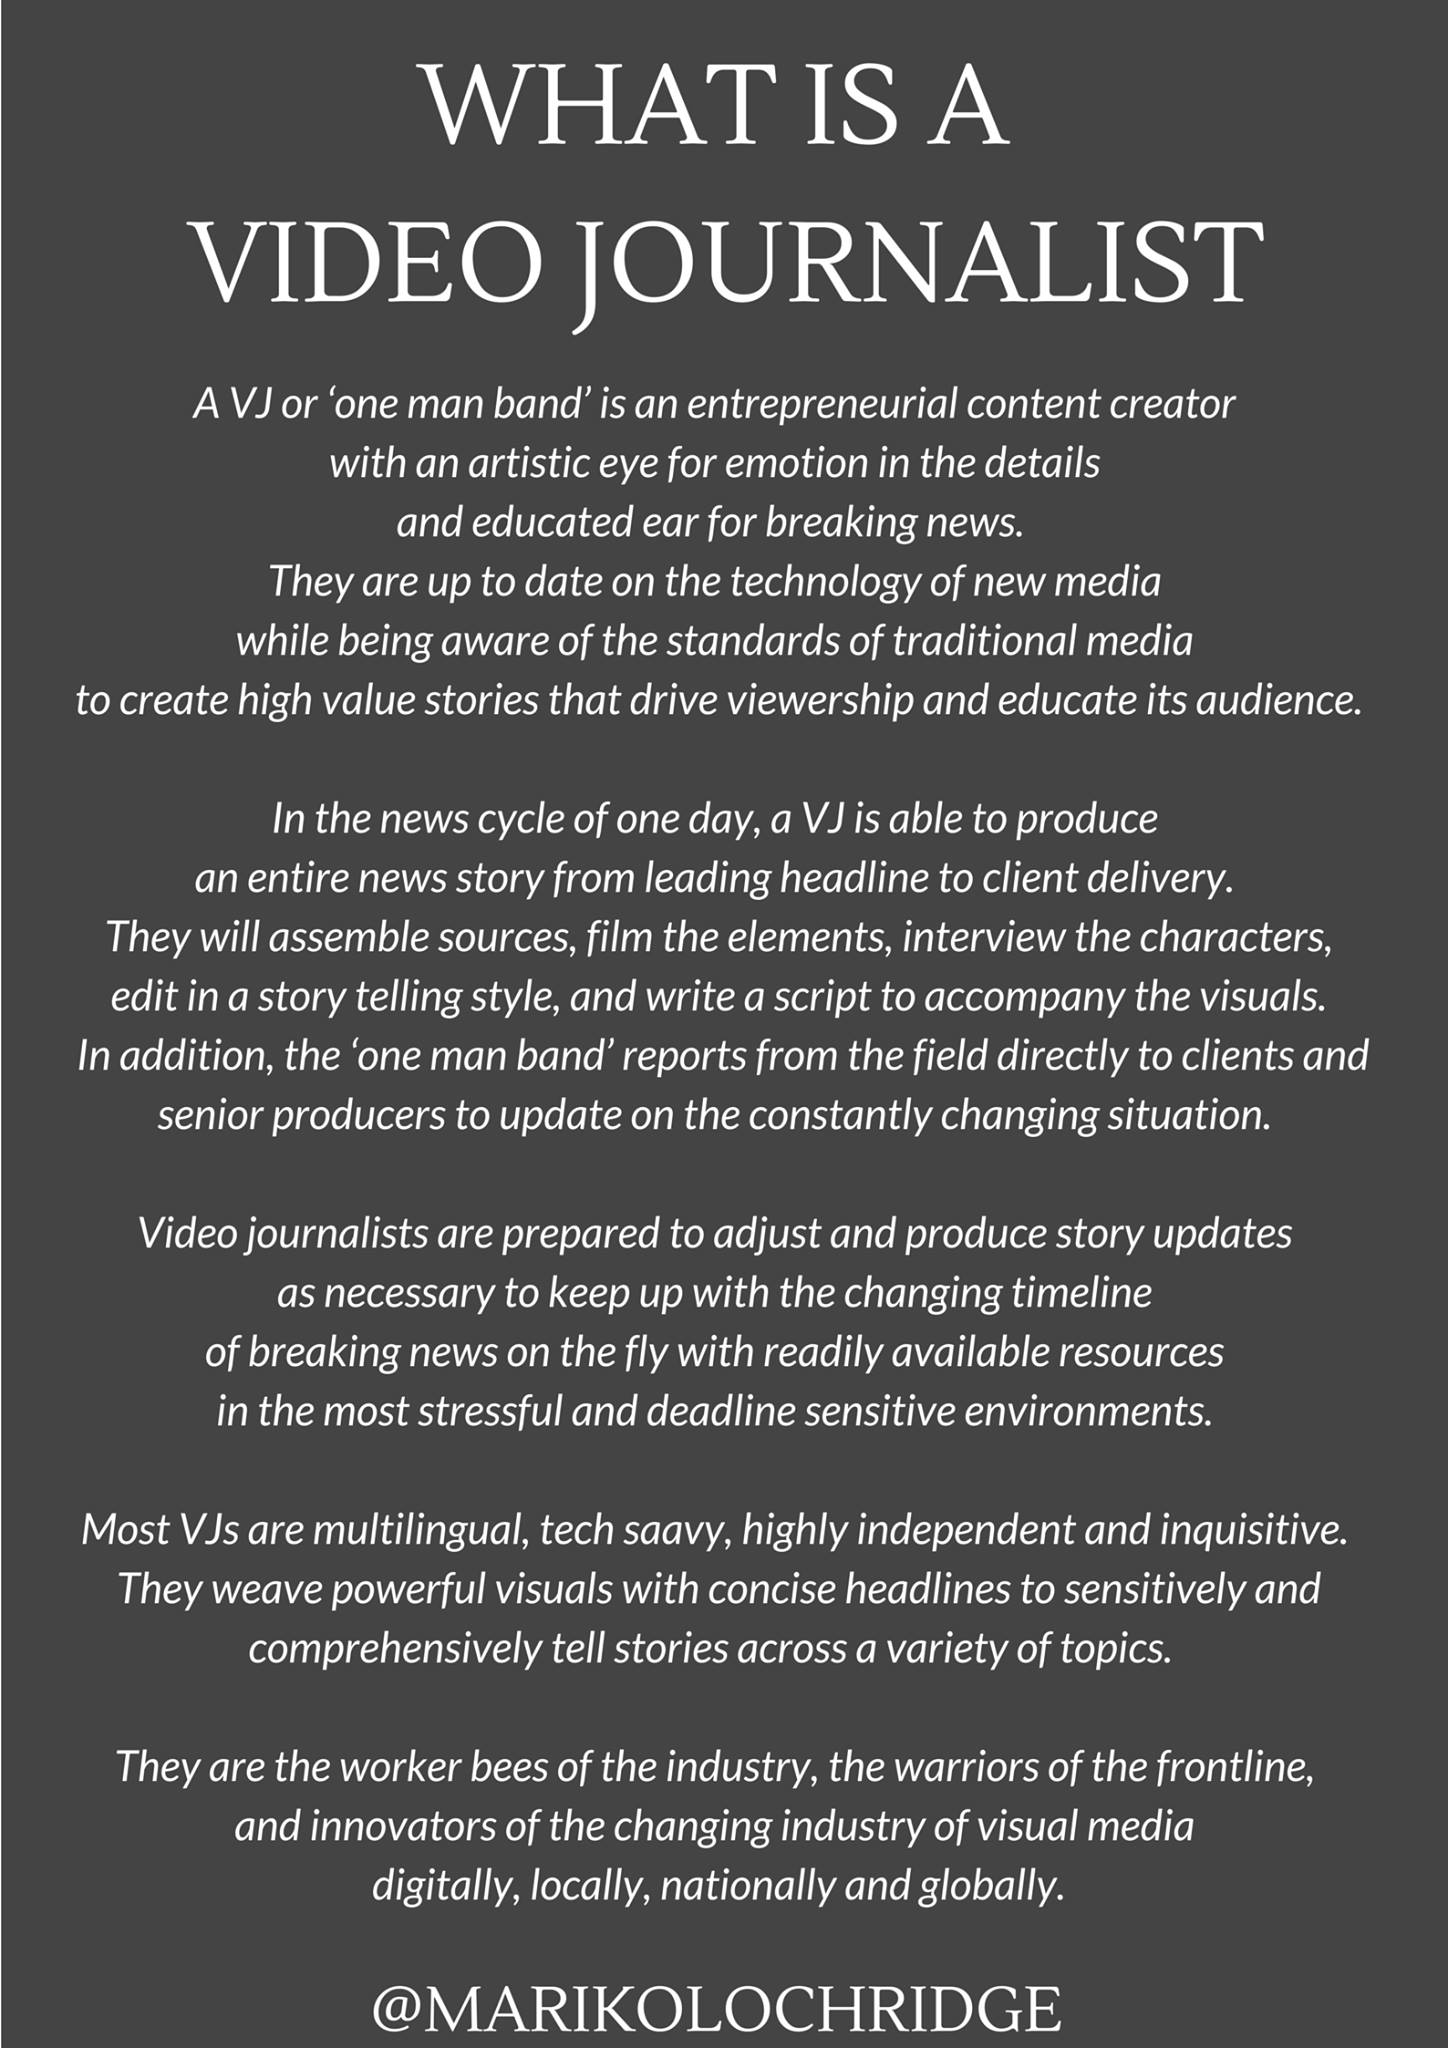 What is a Video Journalist?